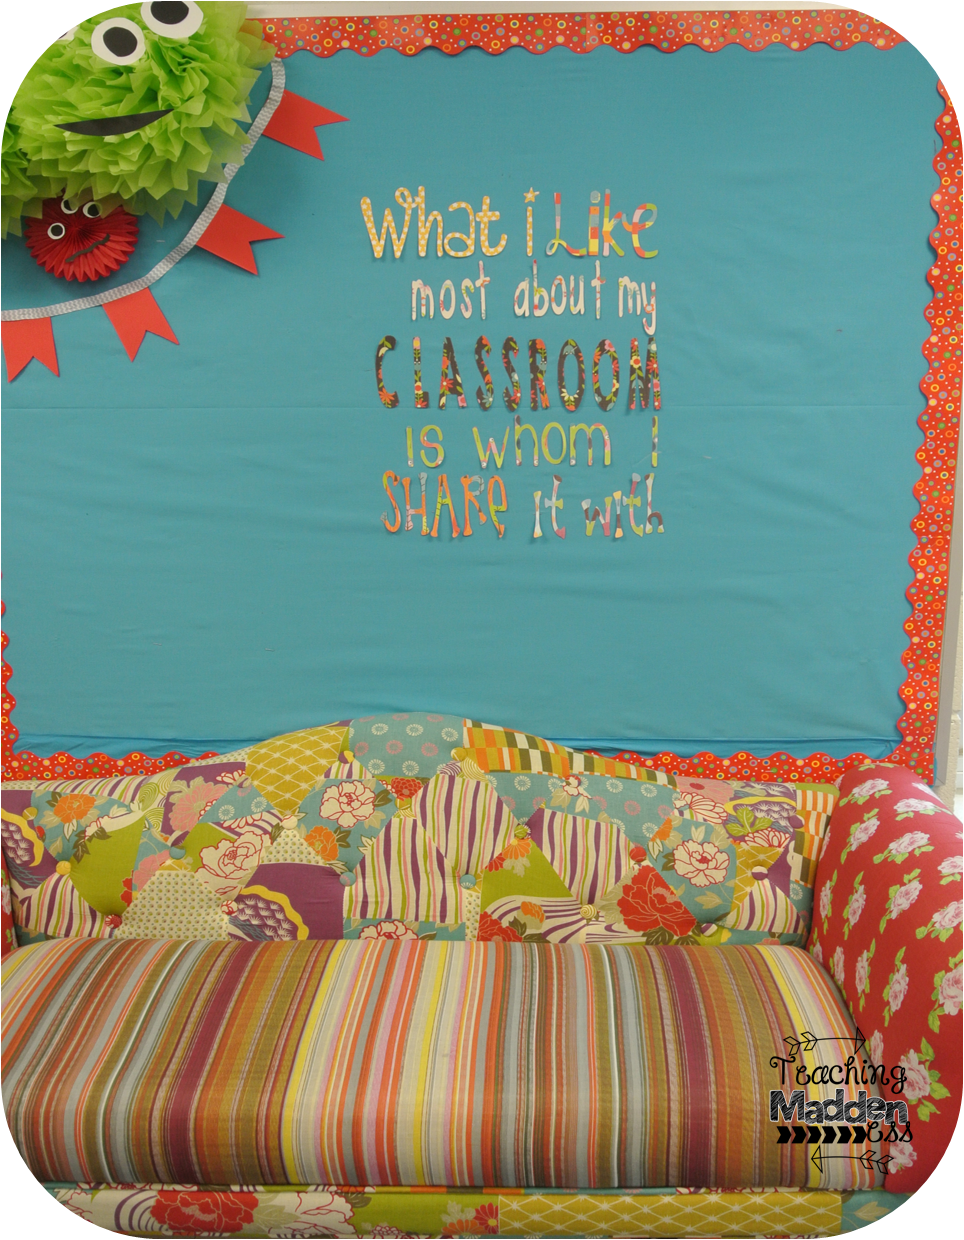 cricut in my classroom classroom decor giveaway teaching once i saw this quote i knew i wanted to use it in my classroom and i thought this bulletin board was the perfect location again i used scrapbook paper